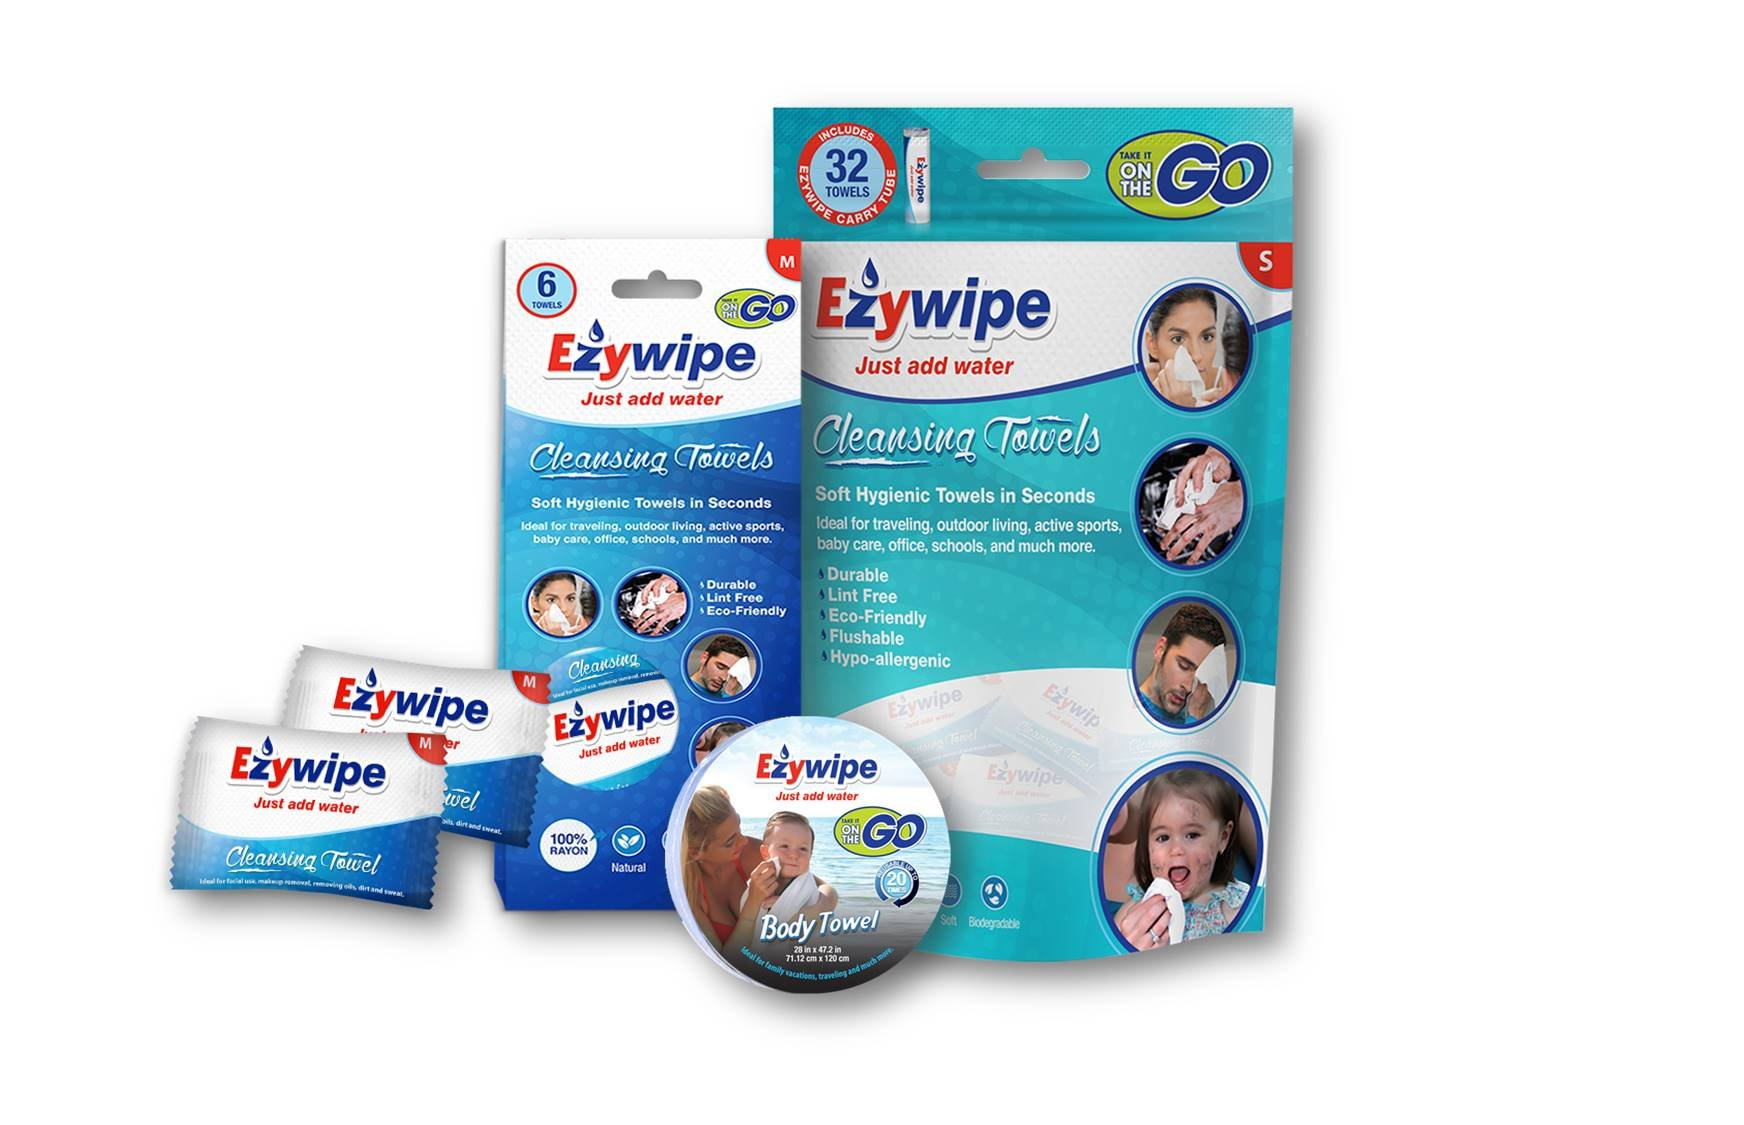 Ezywipe Compressed Cleansing Towels Baby Bundle 100% Rayon Certified Bio-degradable Hypo-allergenic Anti-Microbial Anti-Bacterial for Travel Camping Home Family Personal Senior Pet Care